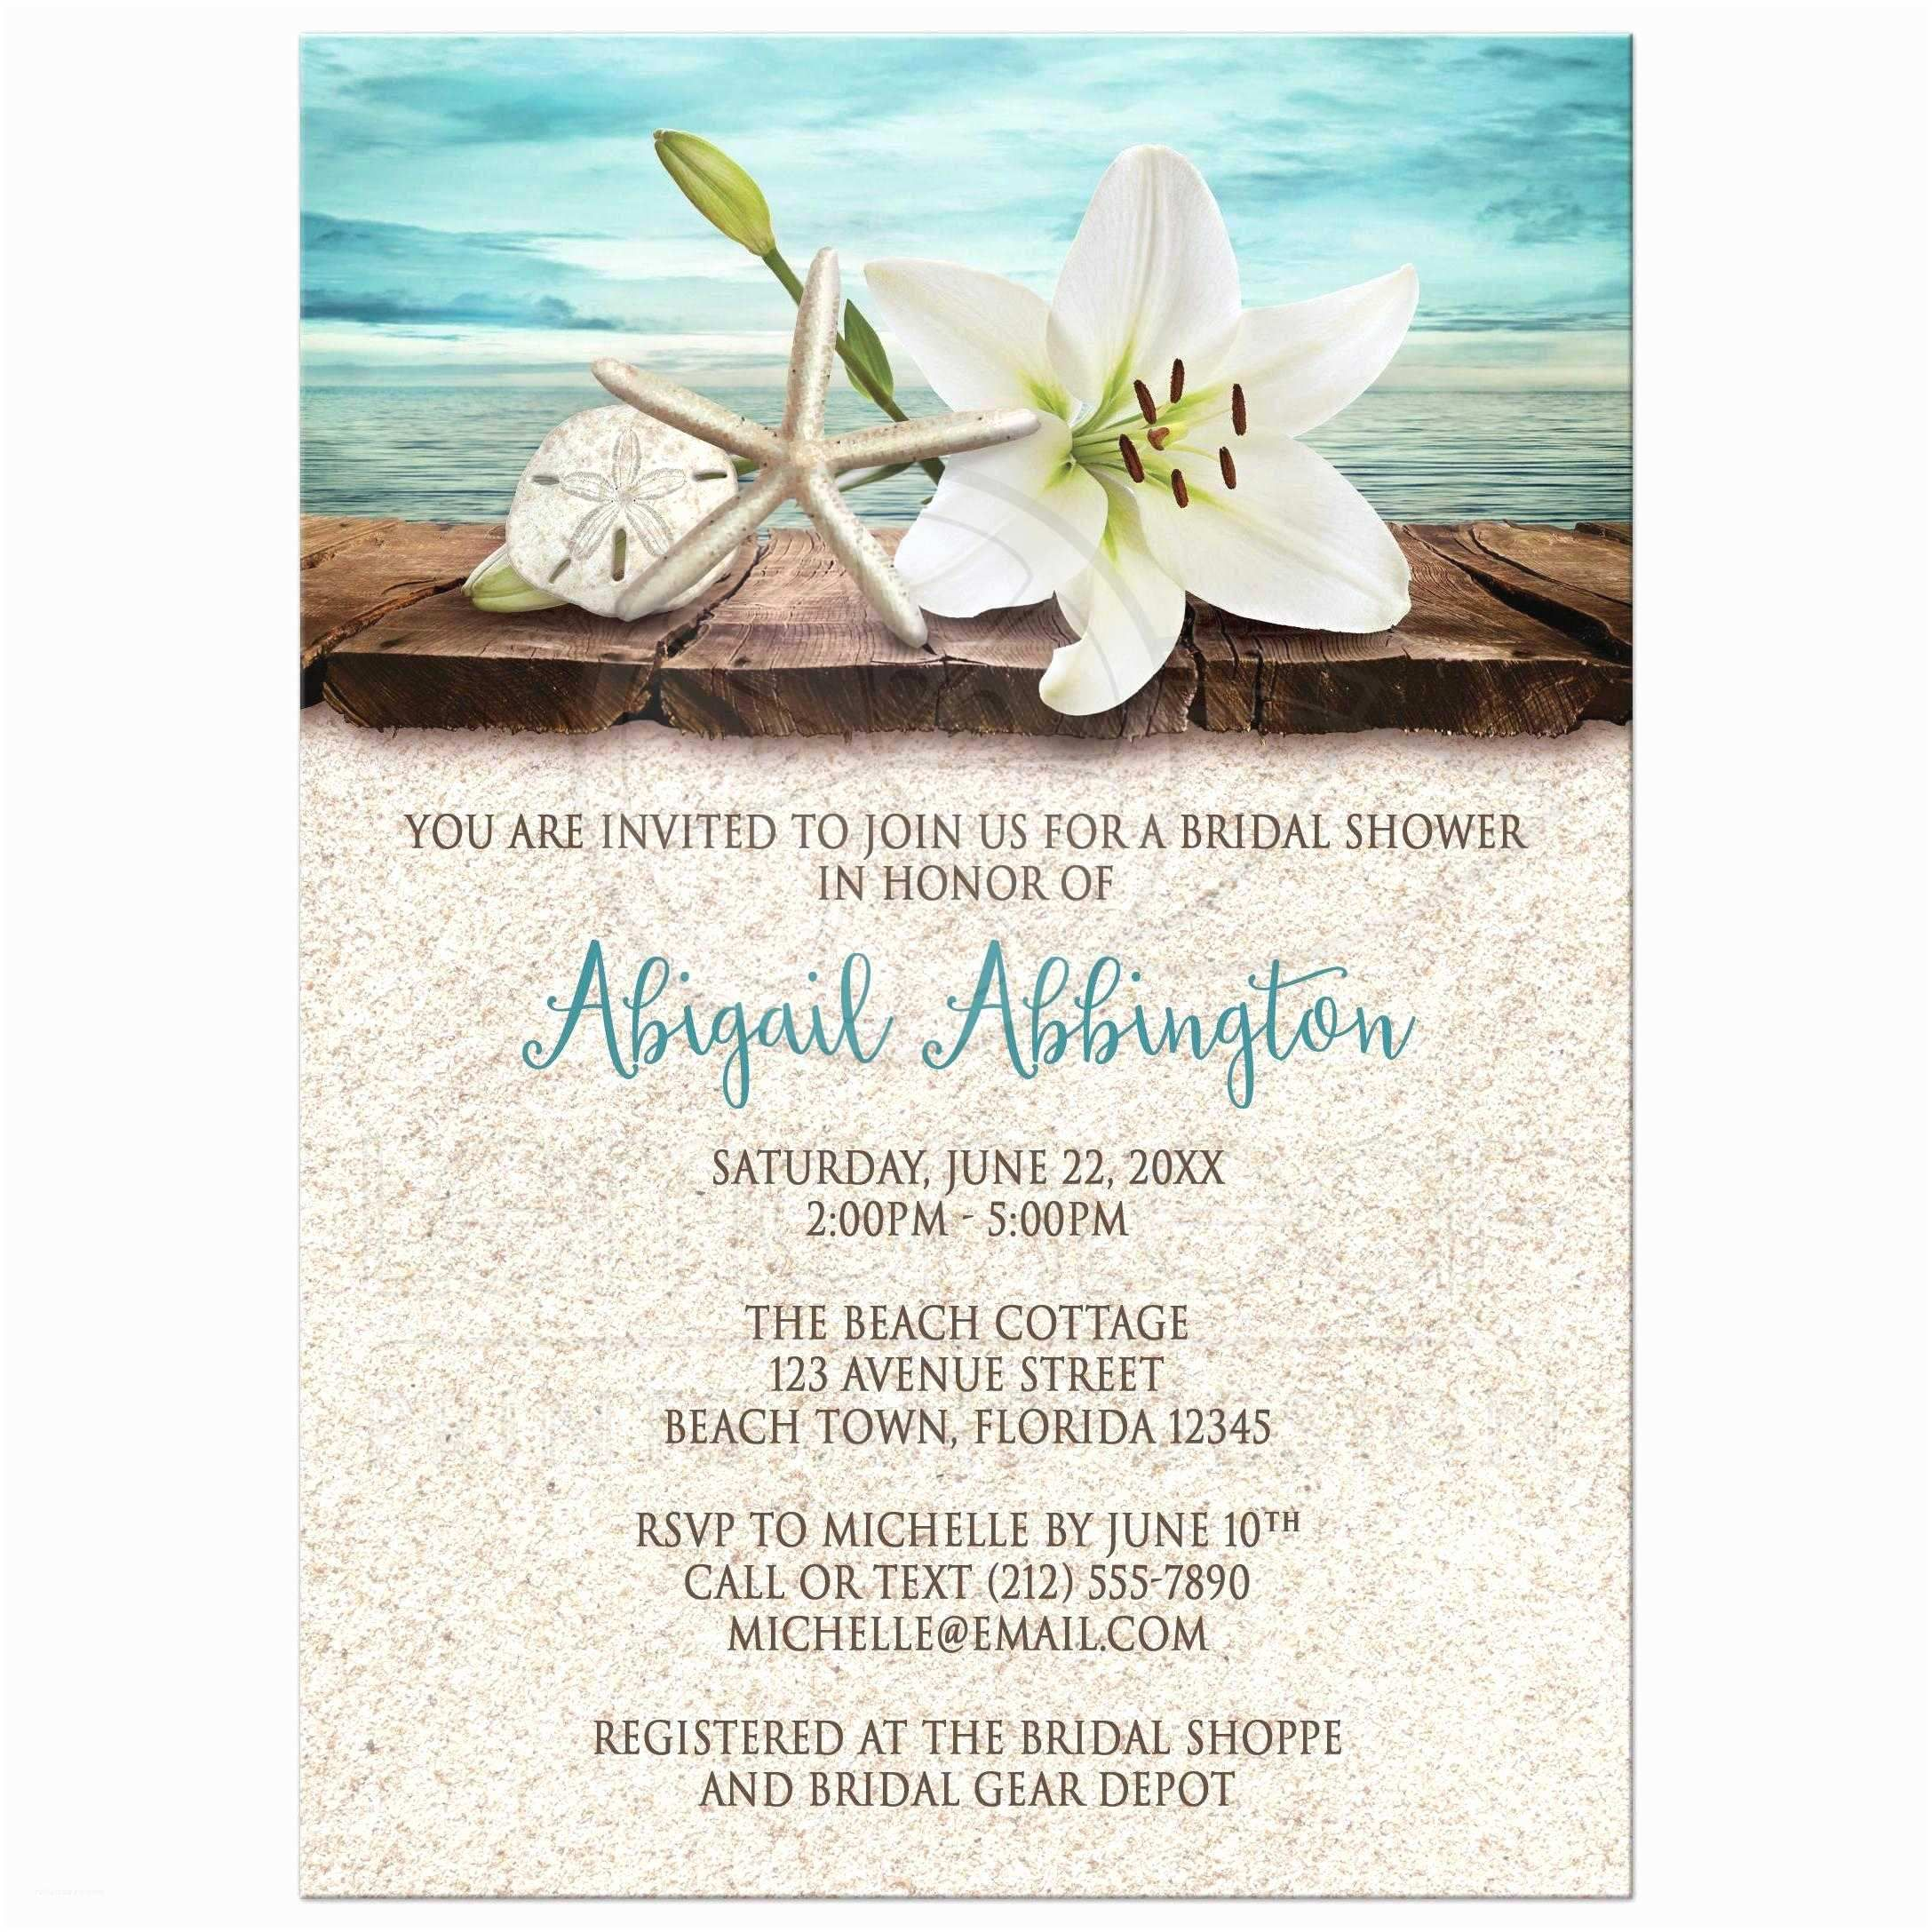 009 Sensational Beach Wedding Invitation Template High Definition  Templates Free Download For WordFull